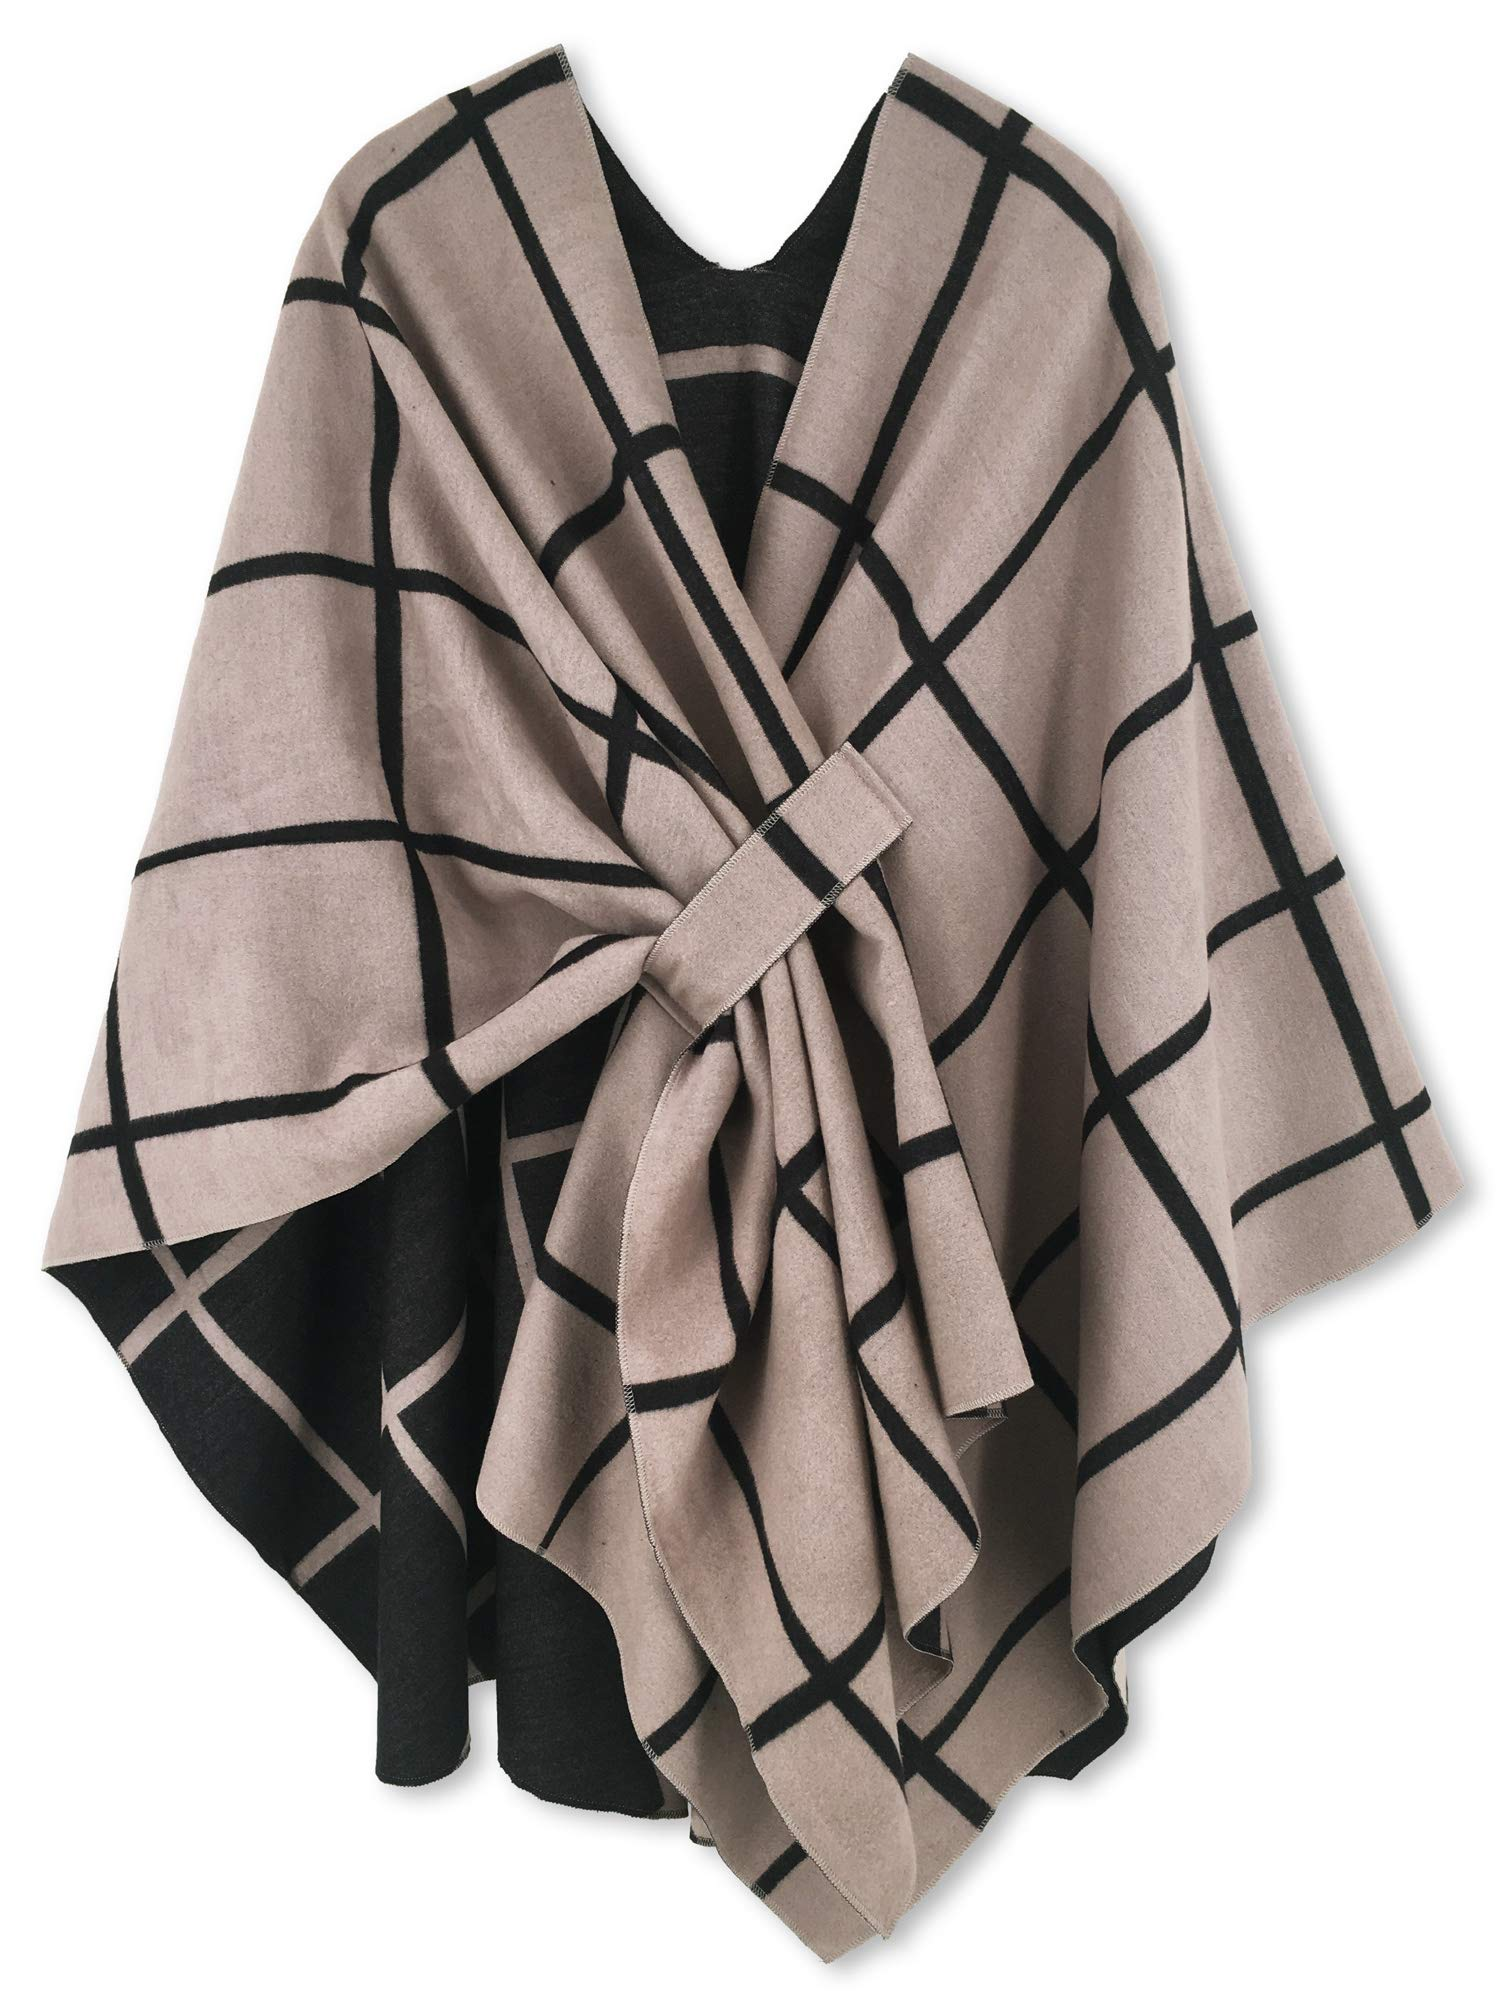 Women Poncho Shawl Cardigan Open Front Elegant Cape Wrap by Moss Rose